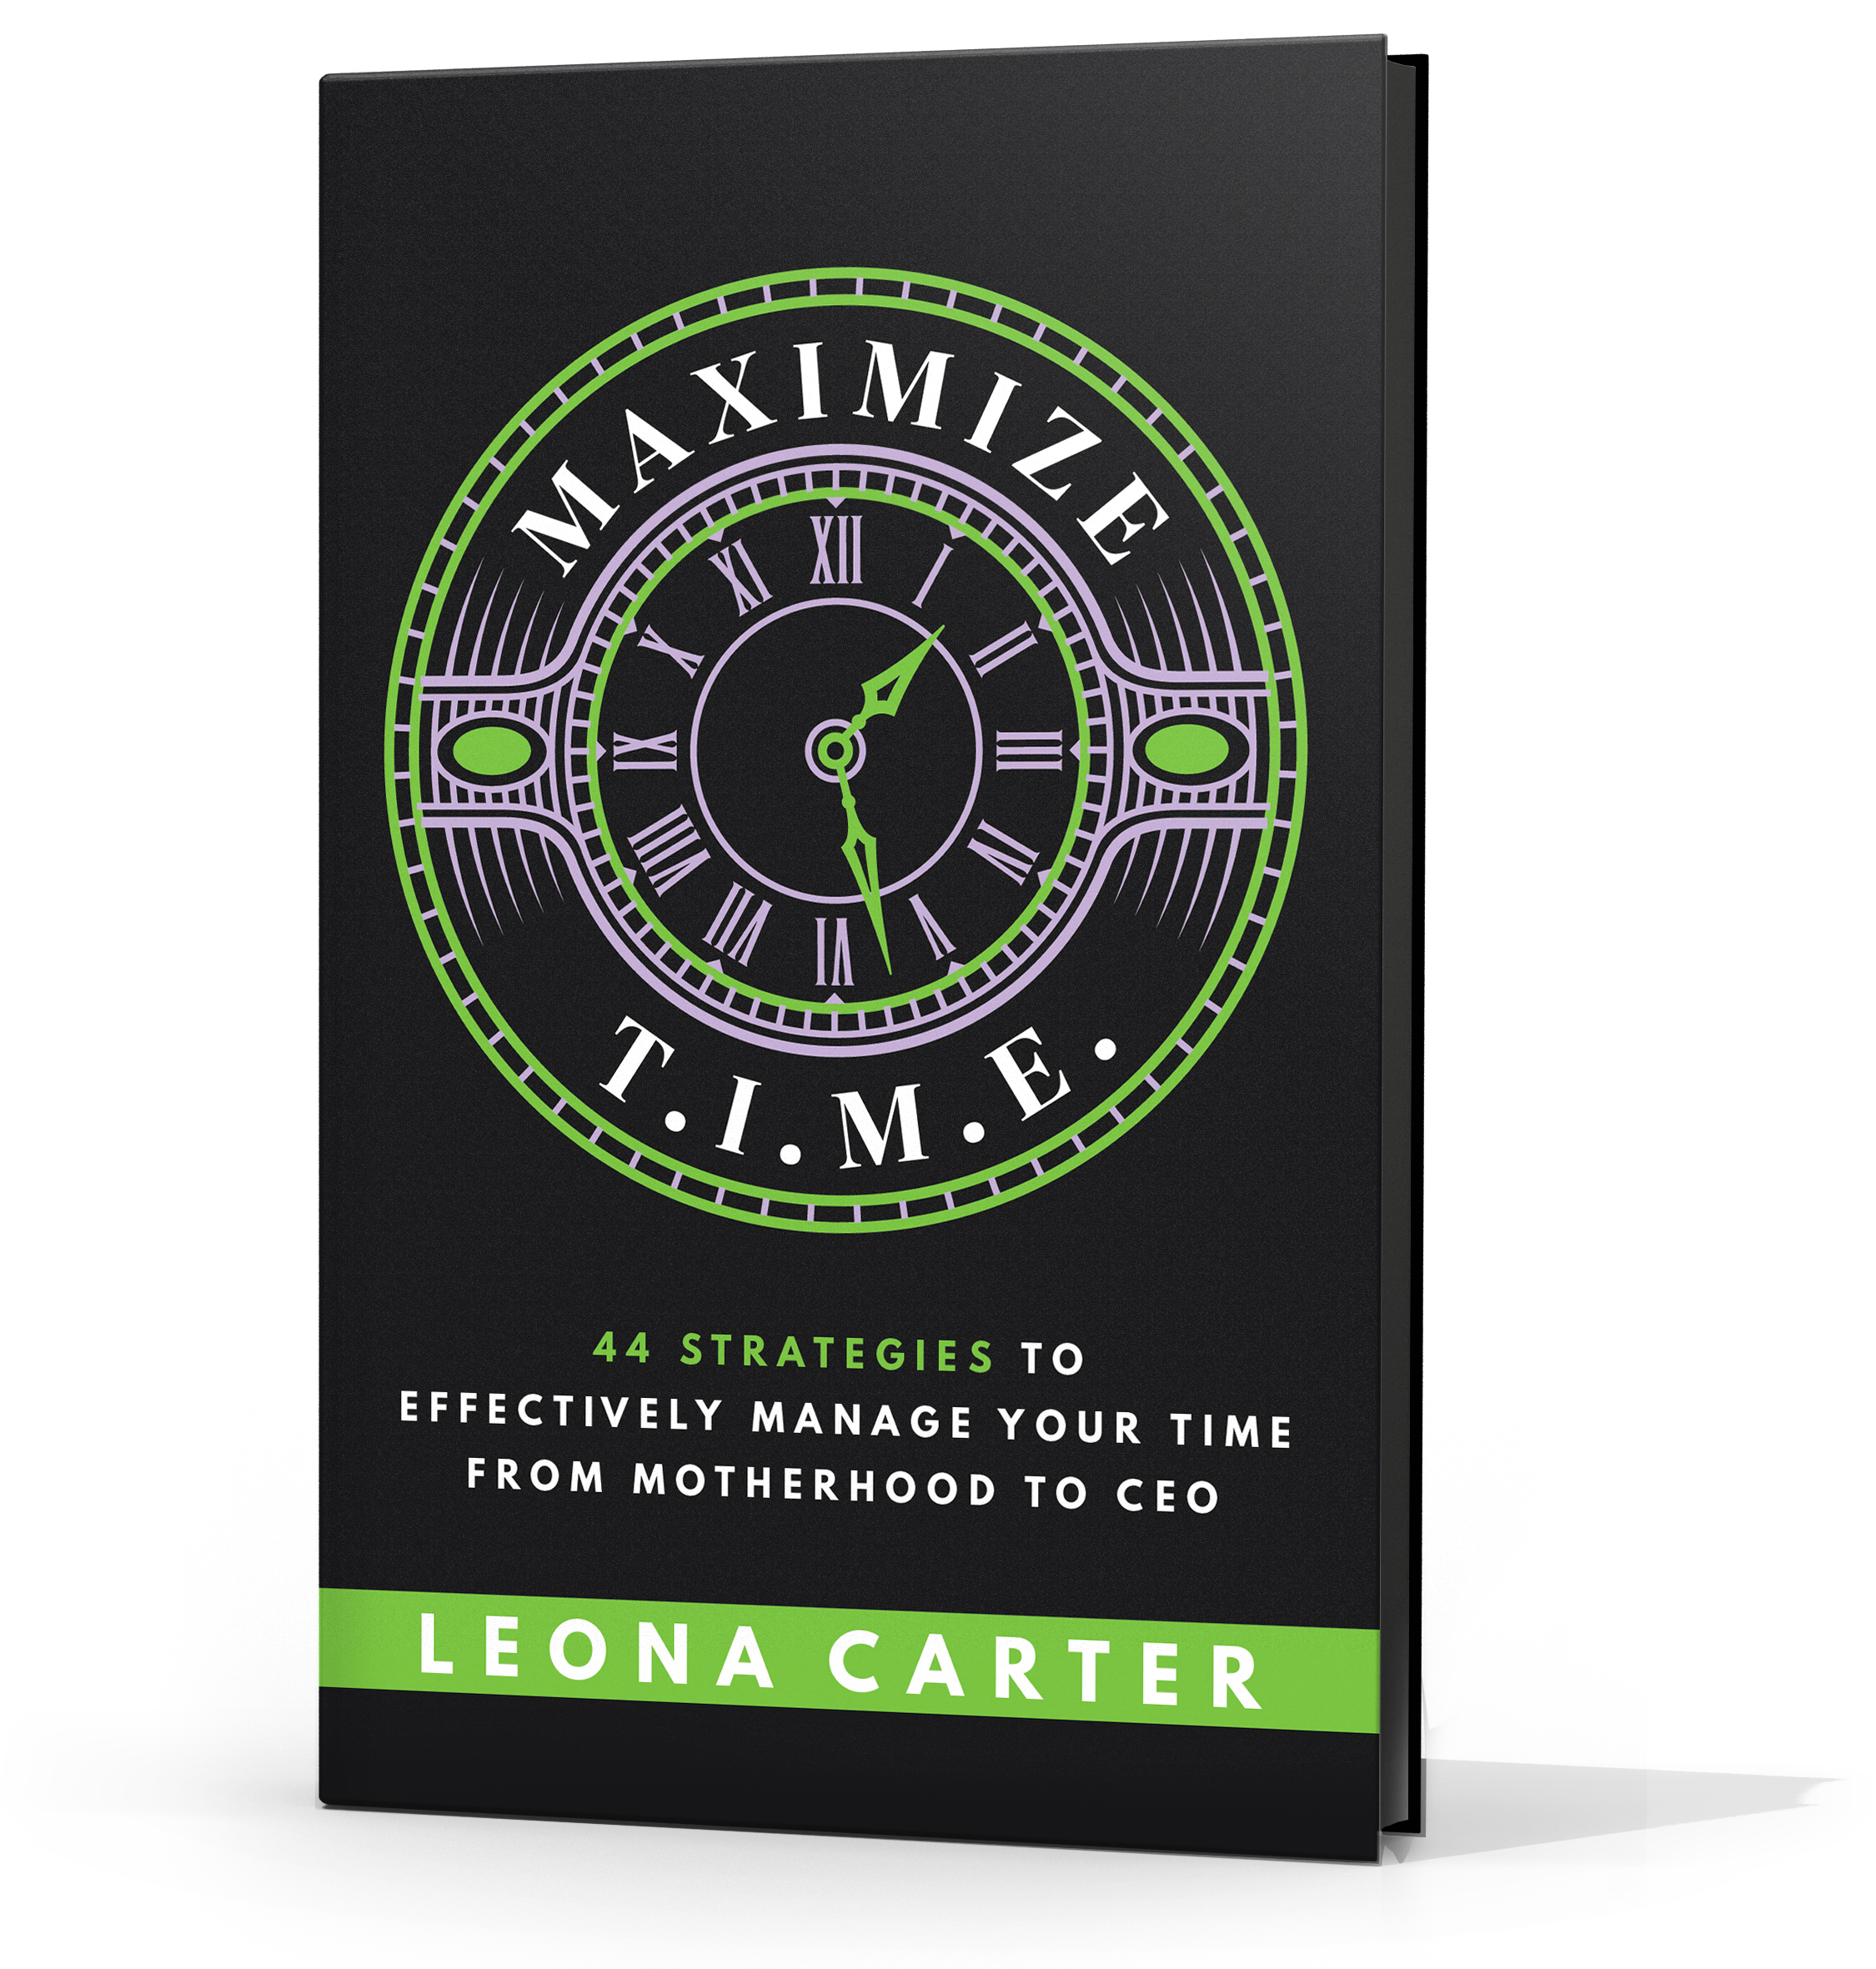 Business Coach and Bestselling Author Releases Book to Help Women Win at Time Management